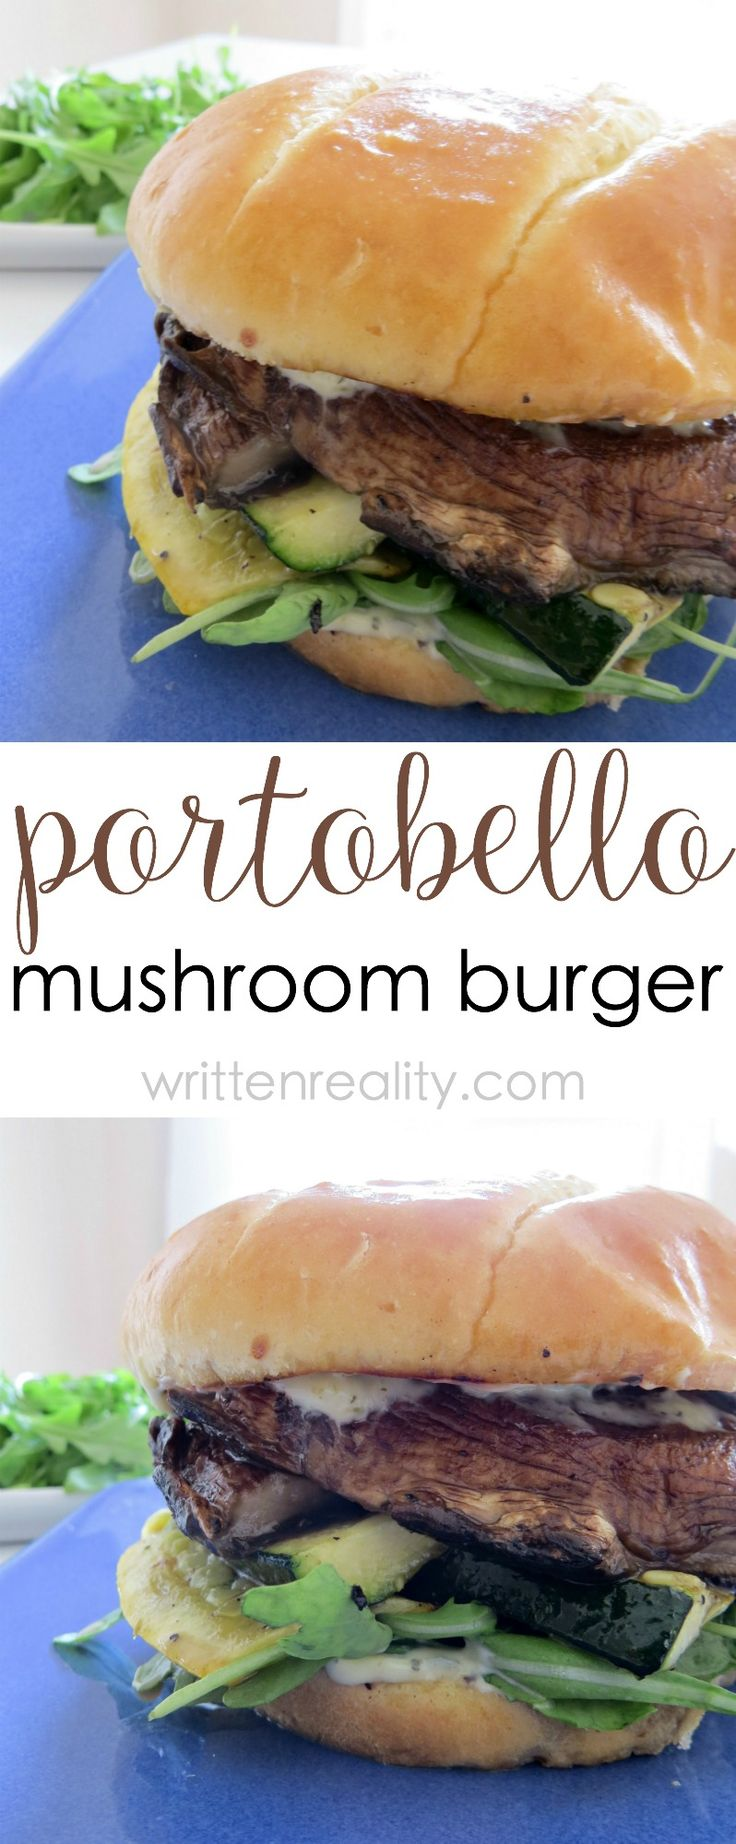 Grilled vegetable recipes: Here's a delicious Portobello mushroom burger that even a meat lover would devour. It's filled with grilled vegetables and a pesto sandwich spread.